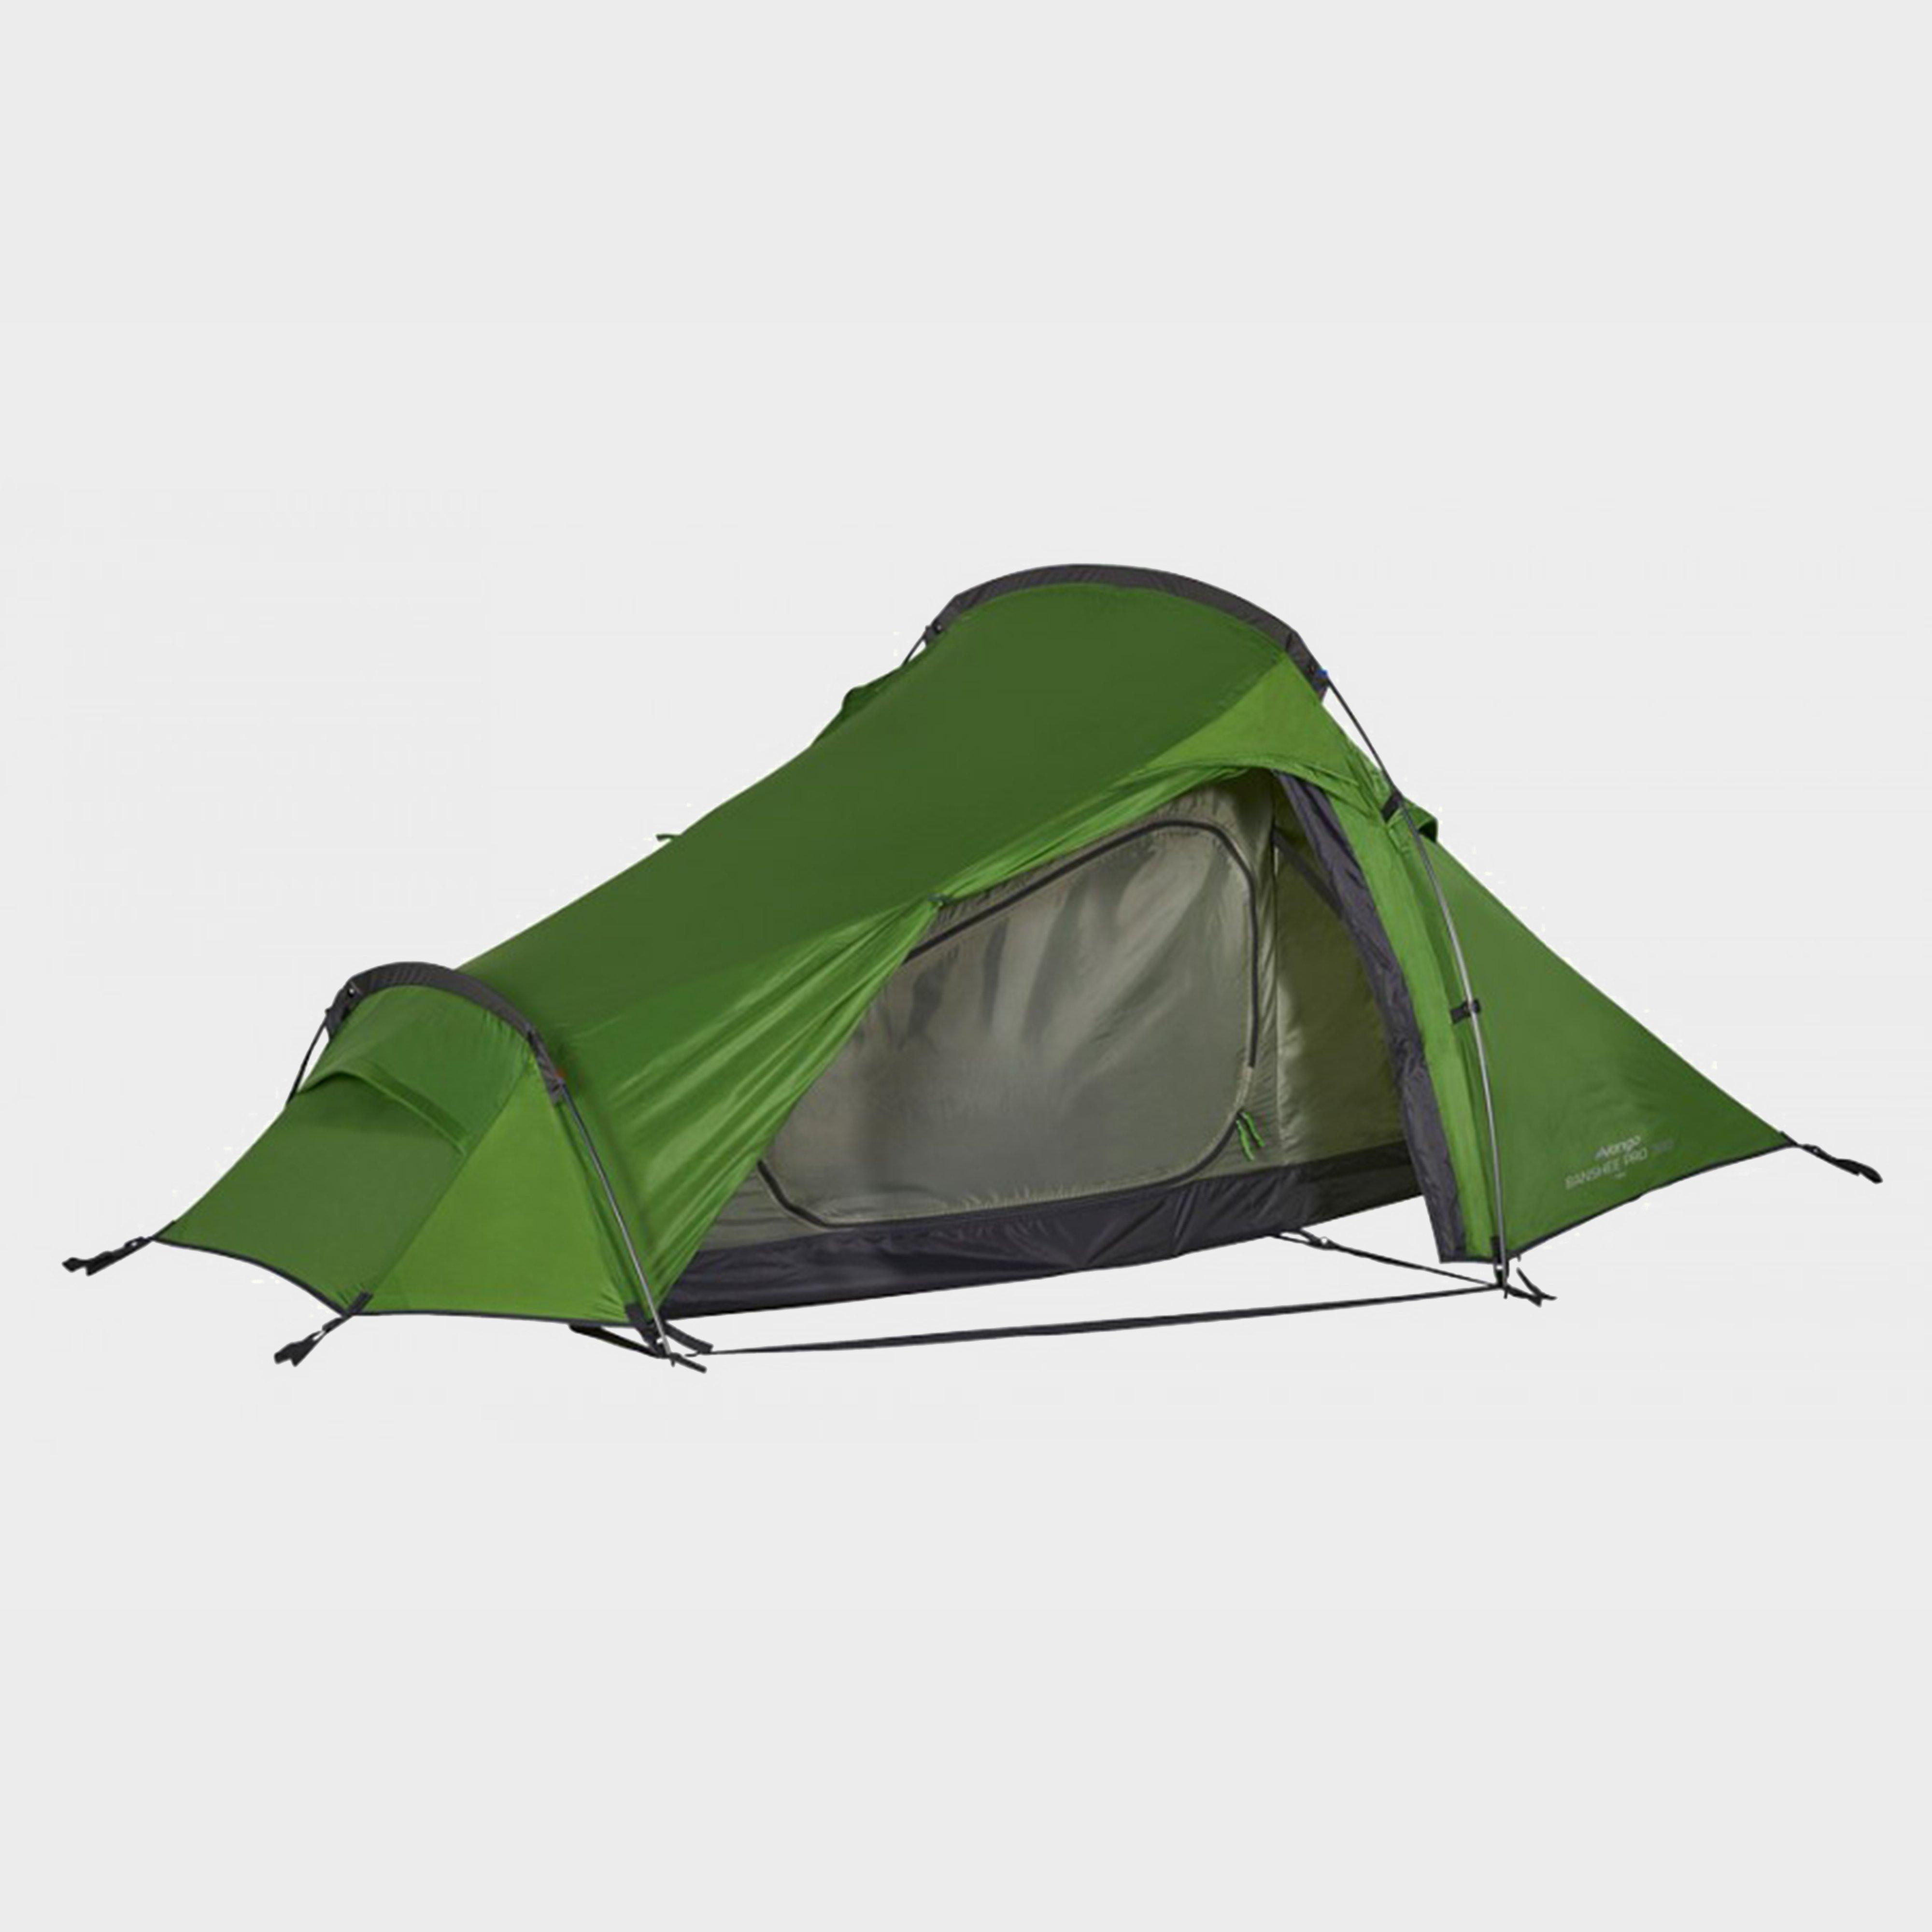 Vango Vango Banshee 300 Pro Backpacking Tent - Green, Green